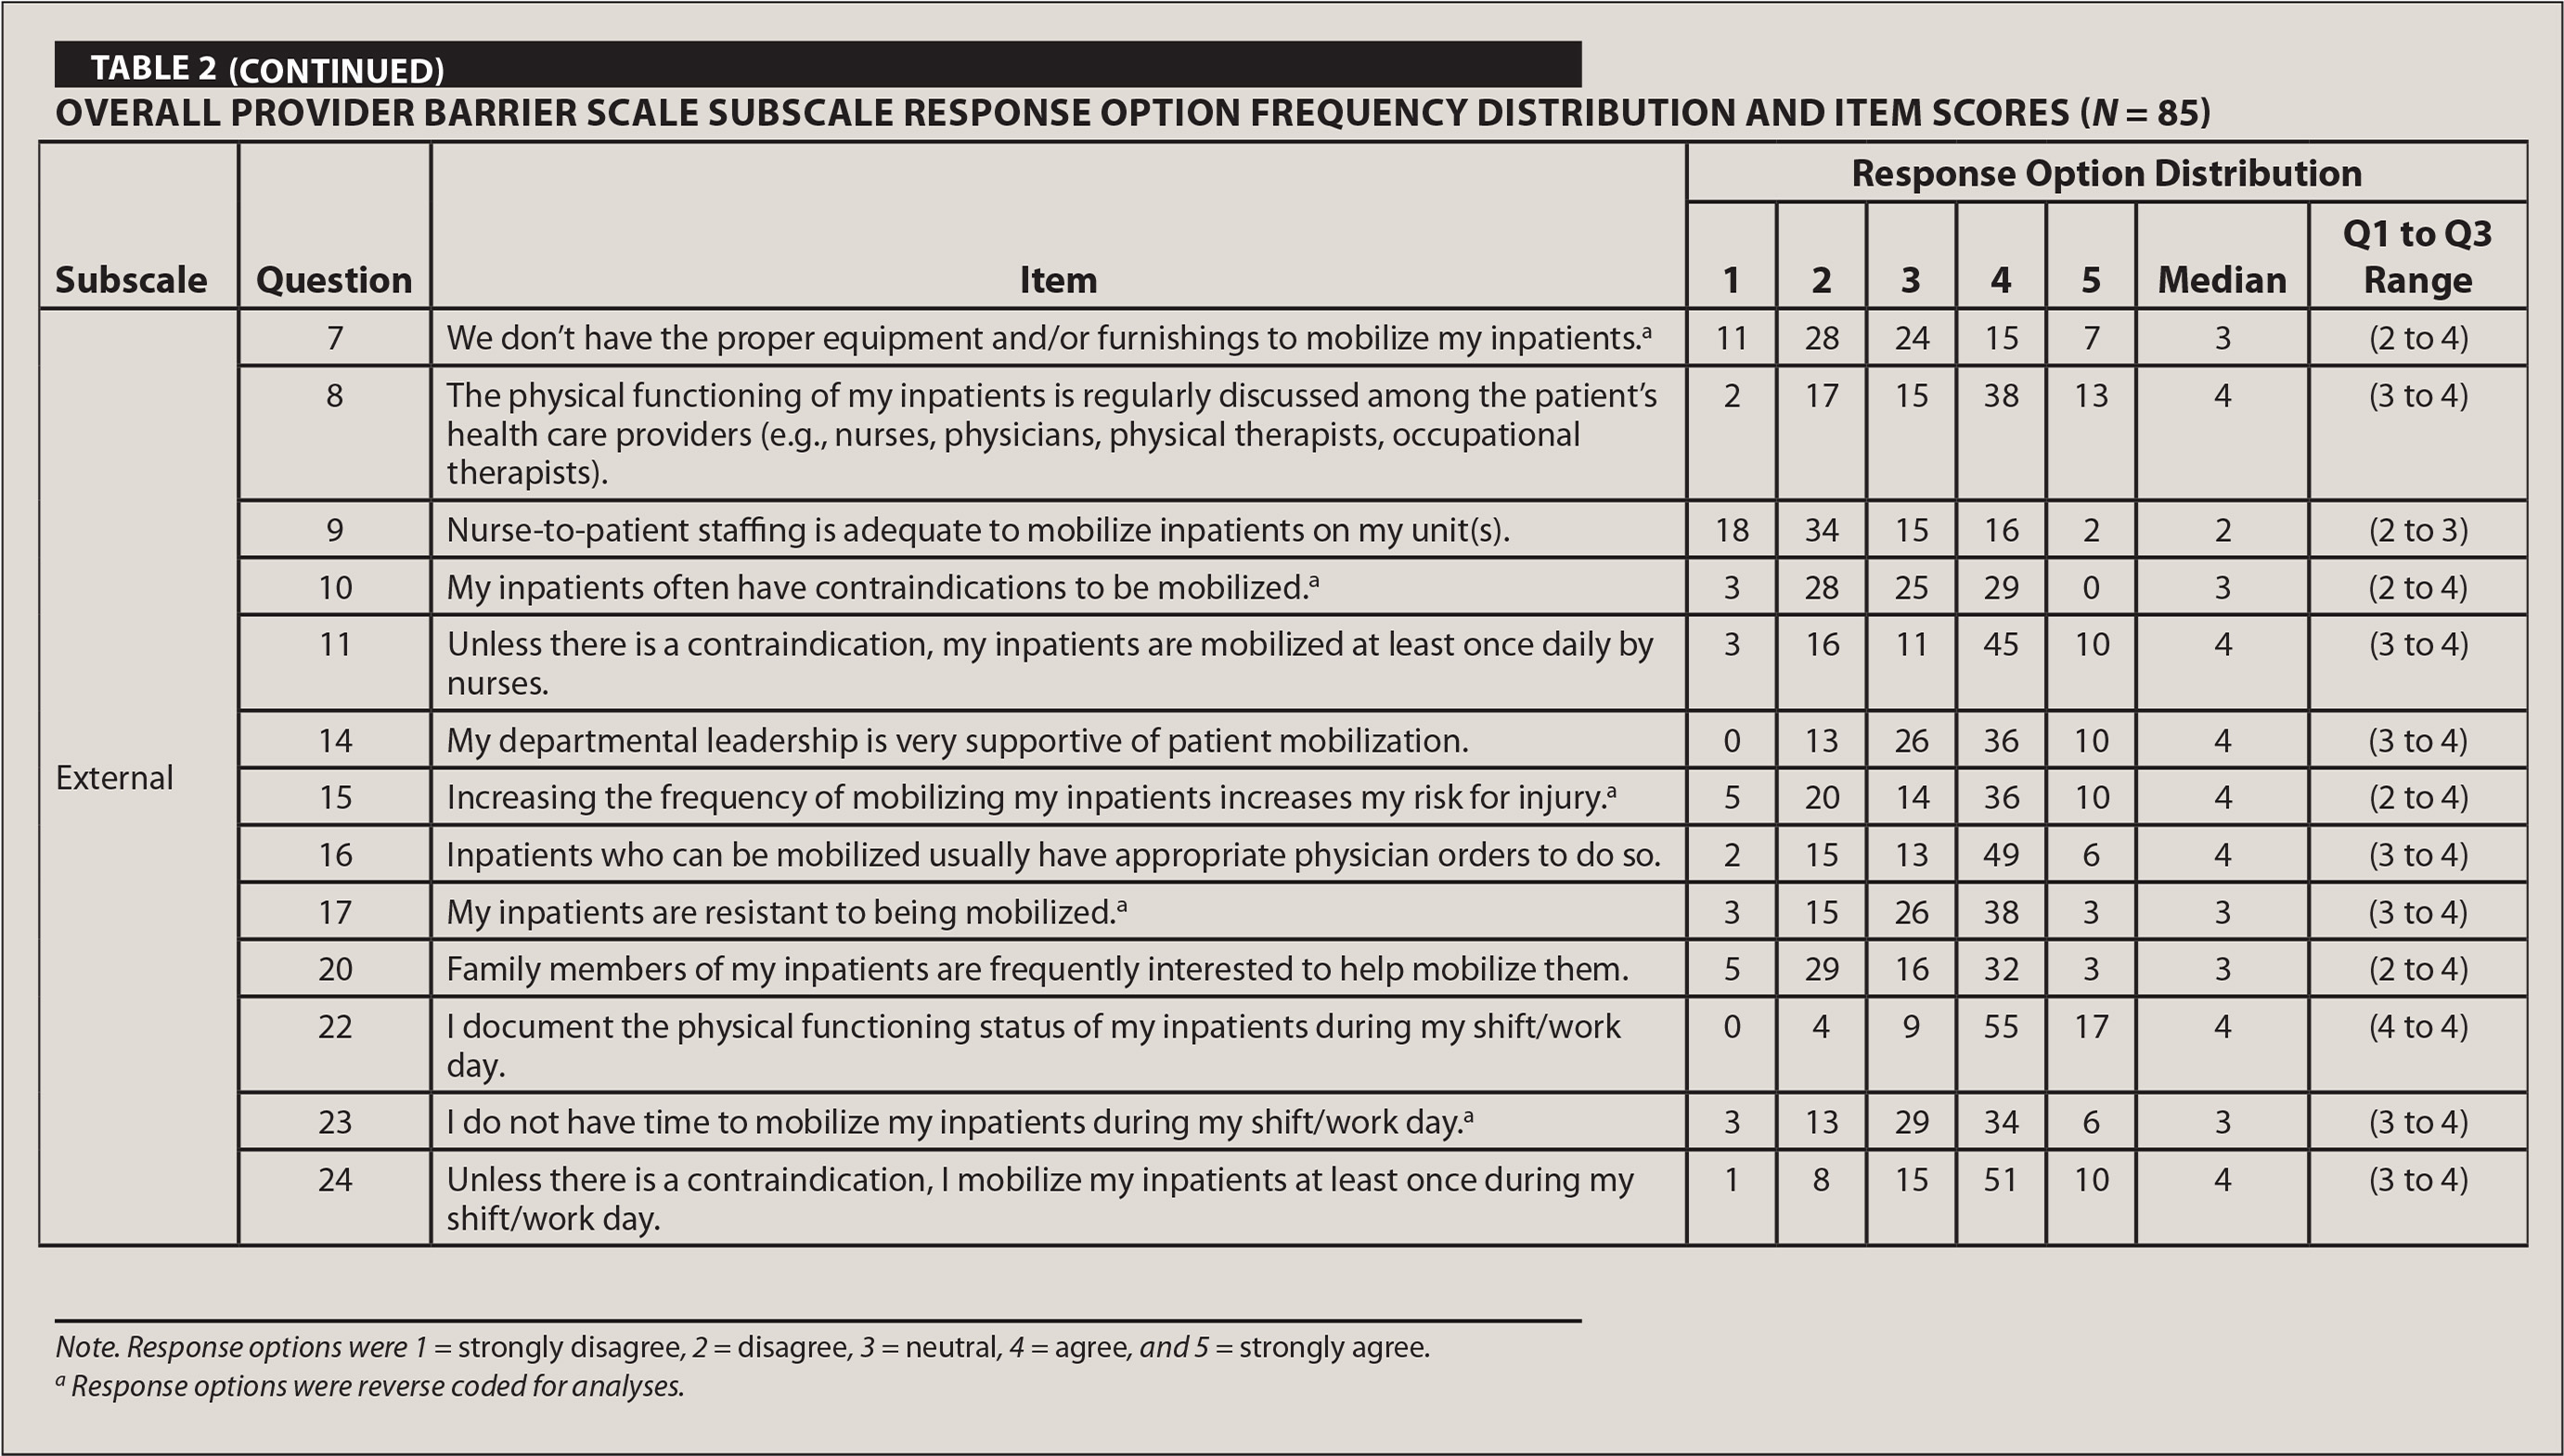 Overall Provider Barrier Scale Subscale Response Option Frequency Distribution and Item Scores (N = 85)